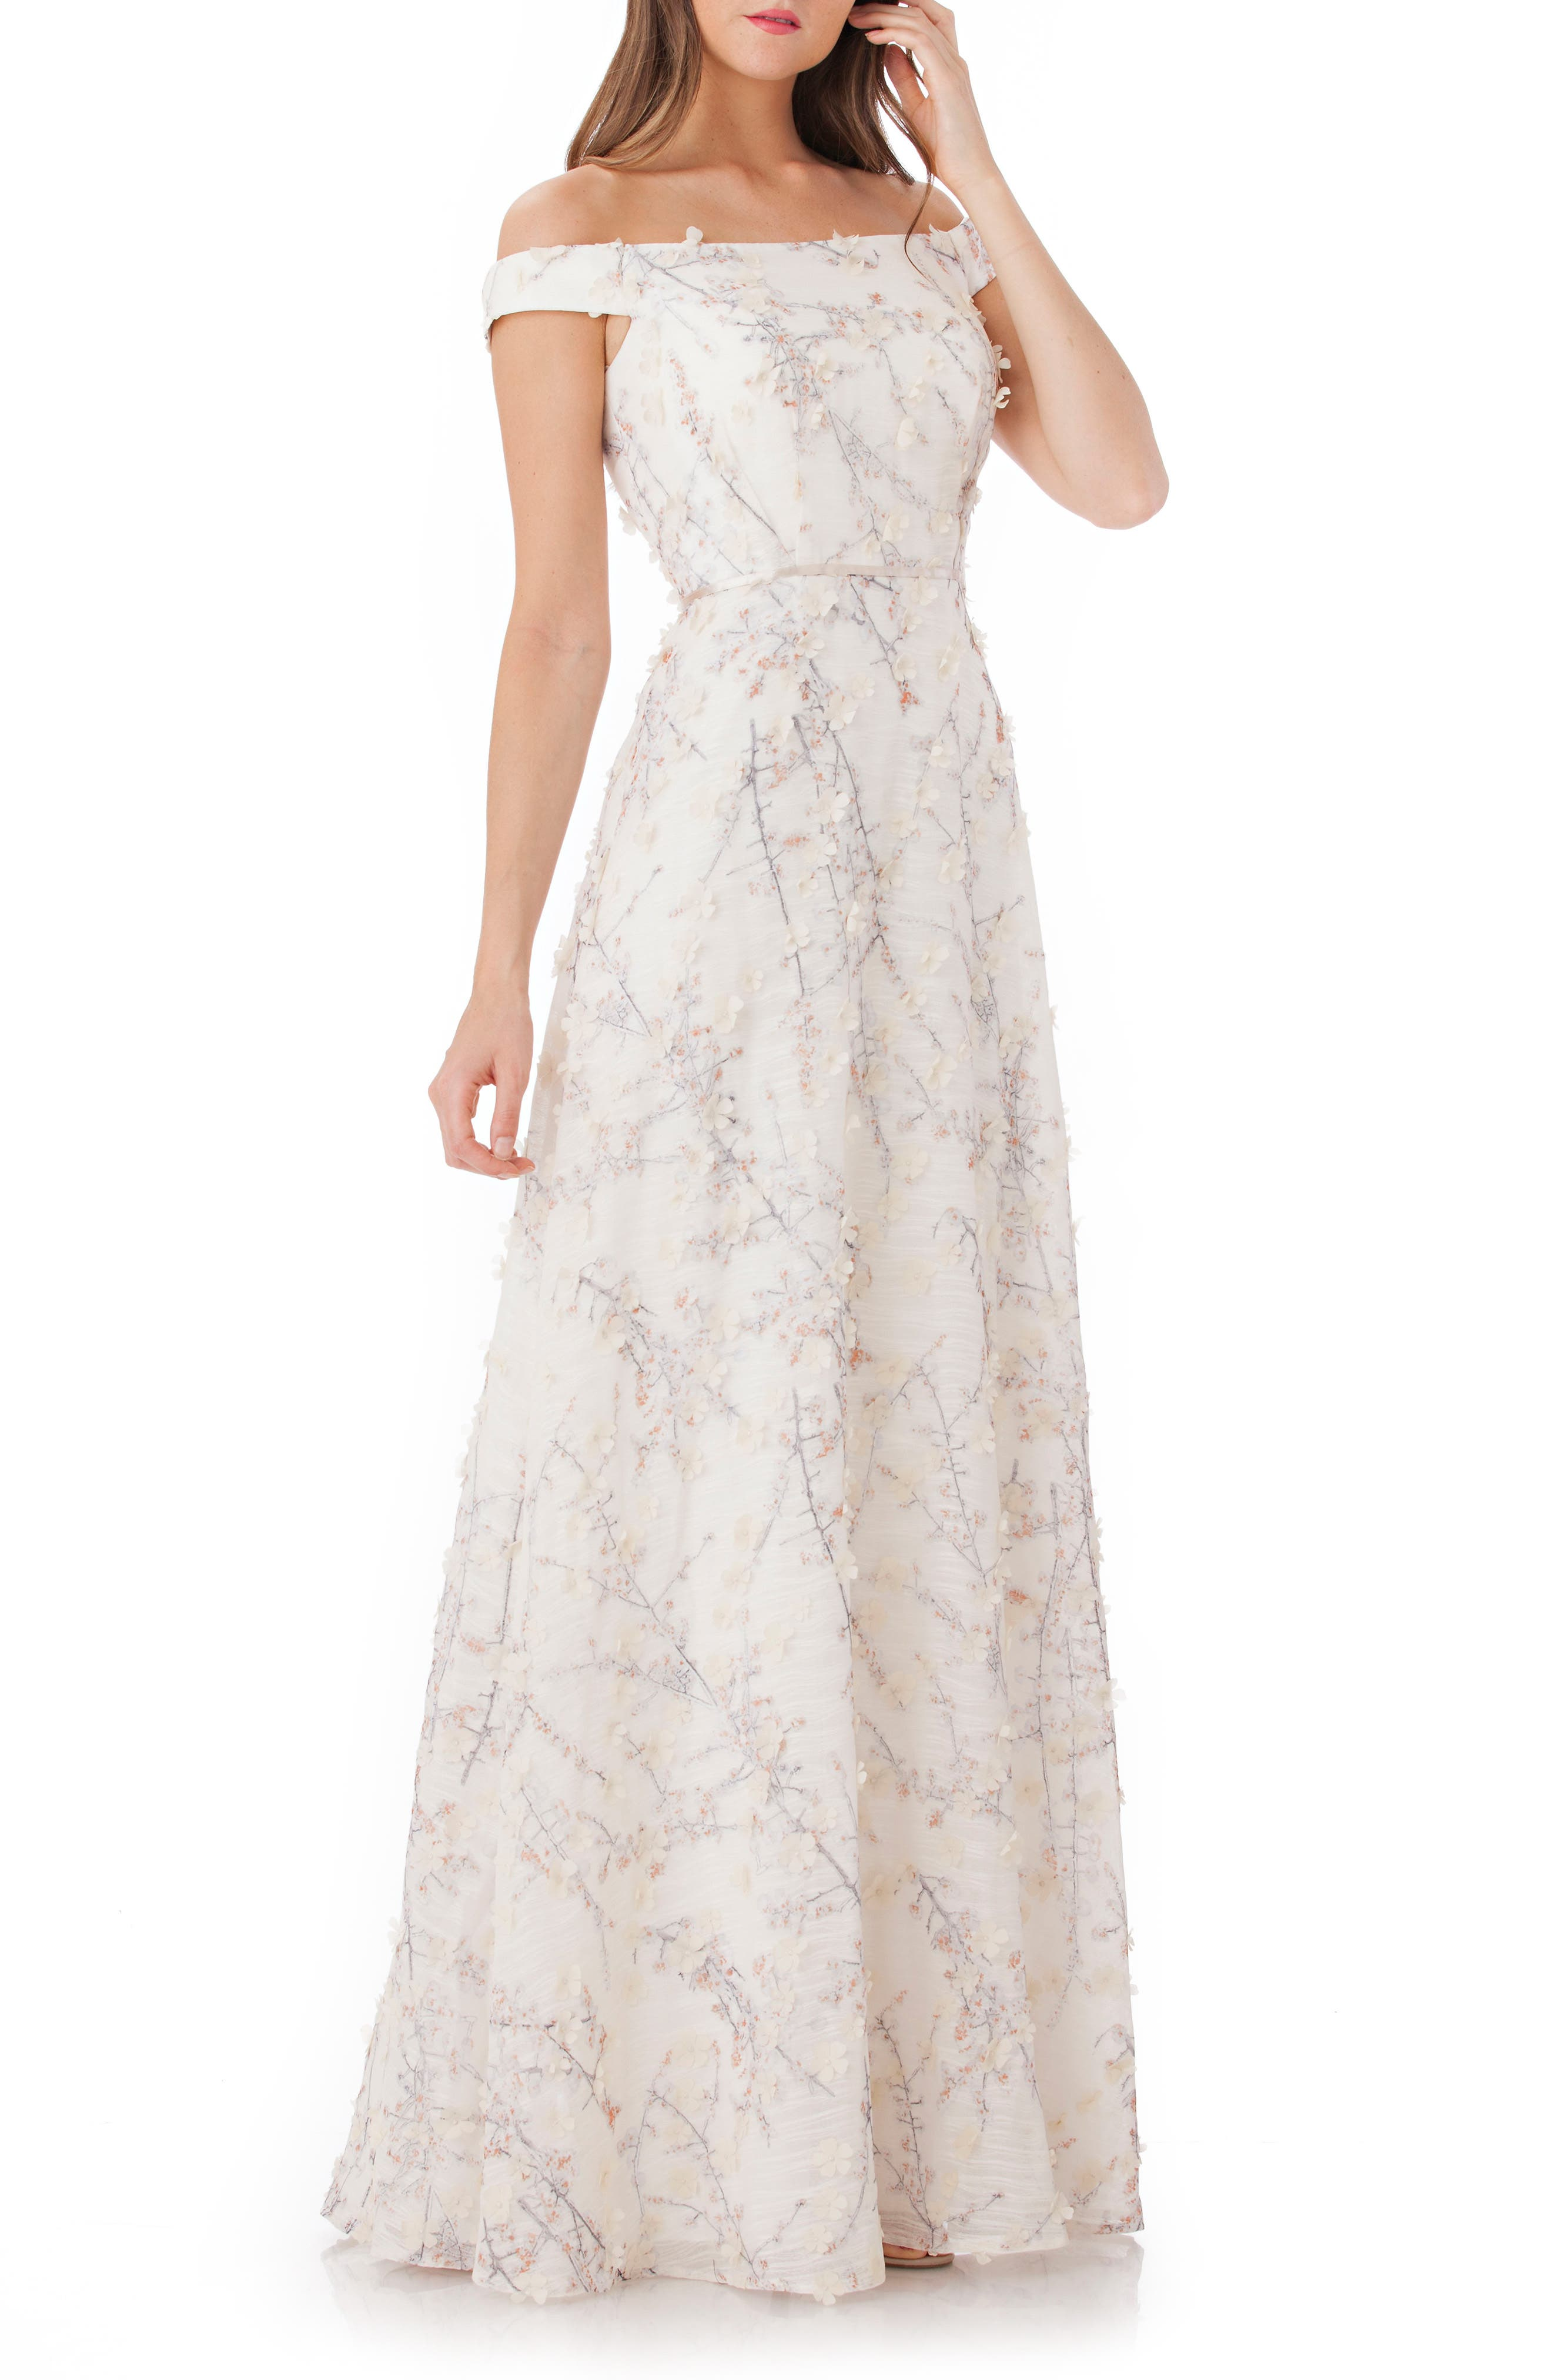 CARMEN MARC VALVO INFUSION,                             3D Embroidery Off the Shoulder Gown,                             Main thumbnail 1, color,                             270